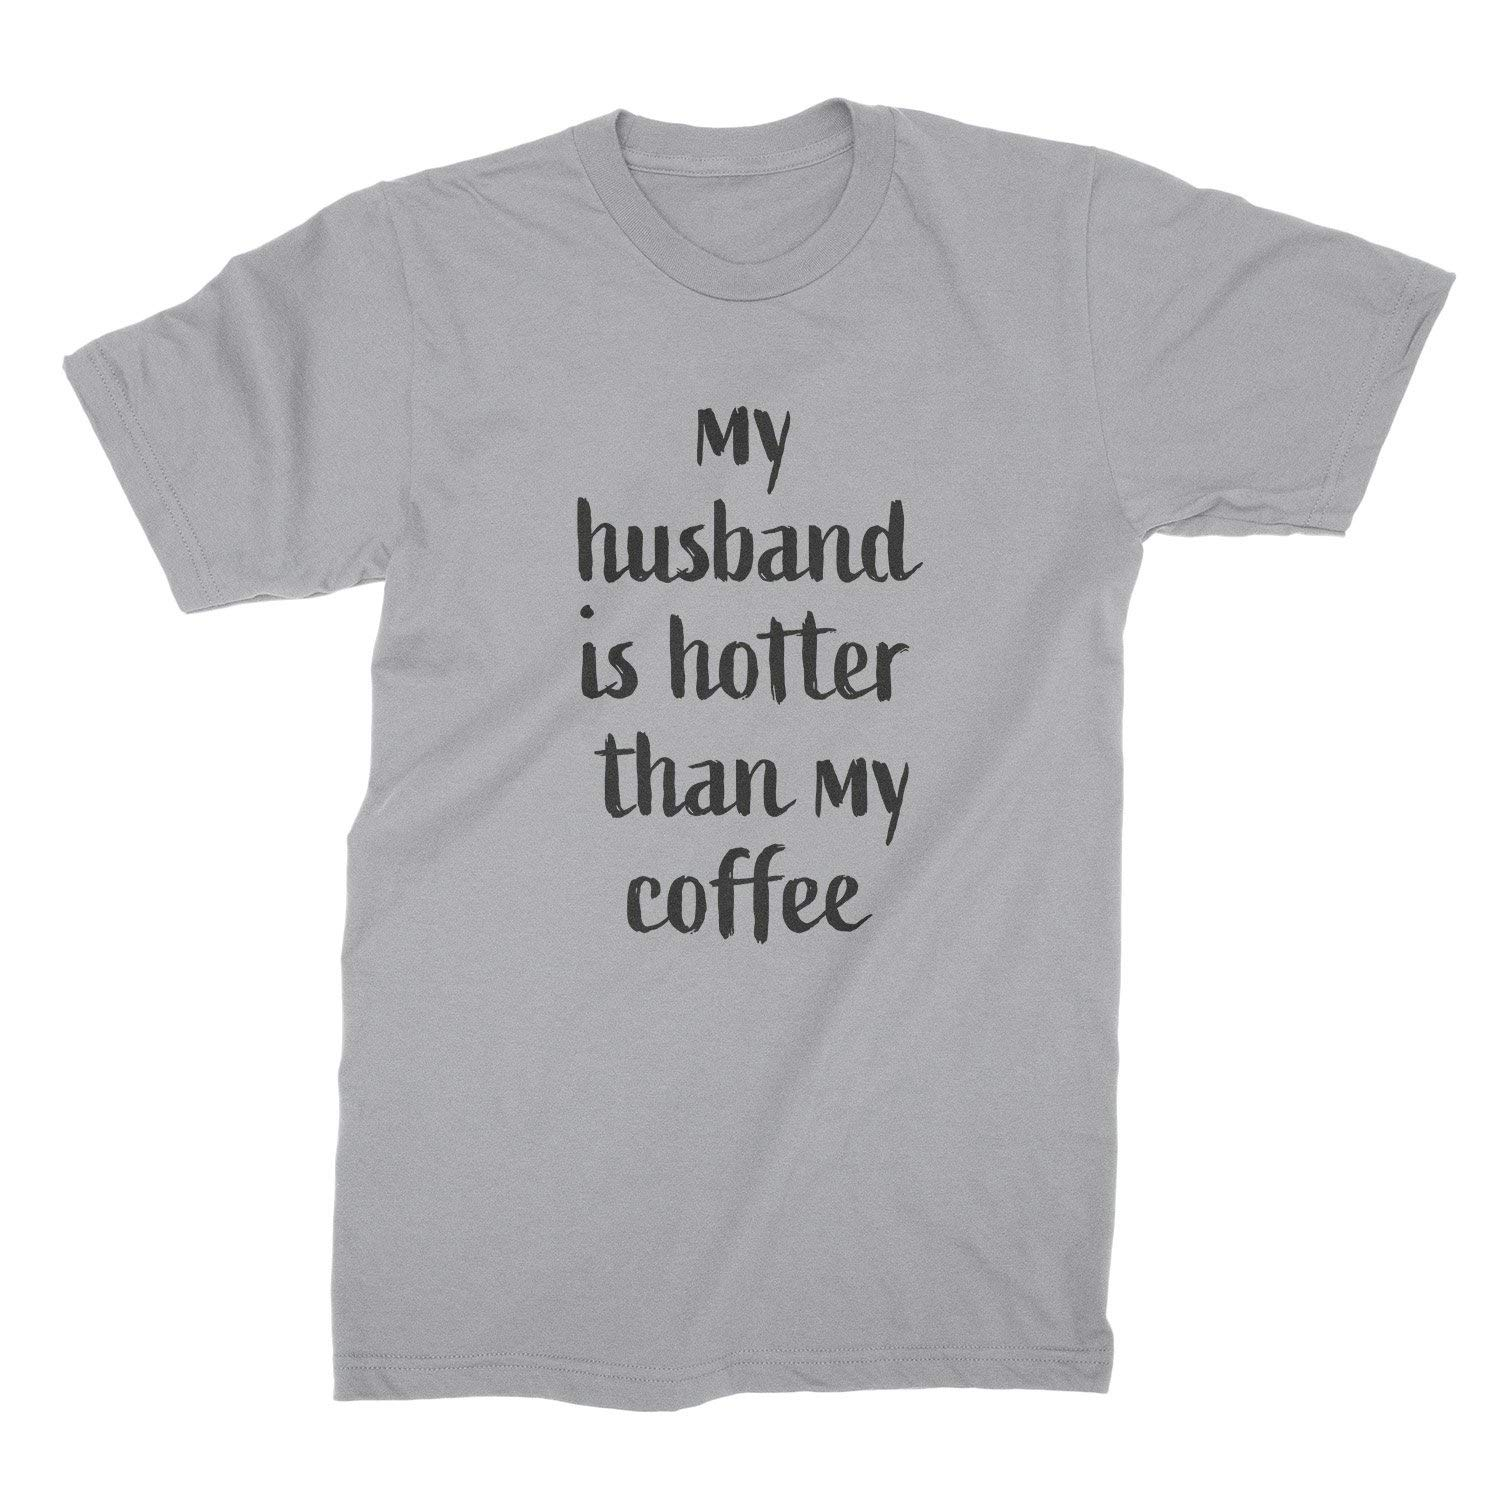 We Got Good My Husband Is Hotter Than My Coffee Funny Shirts For Wife